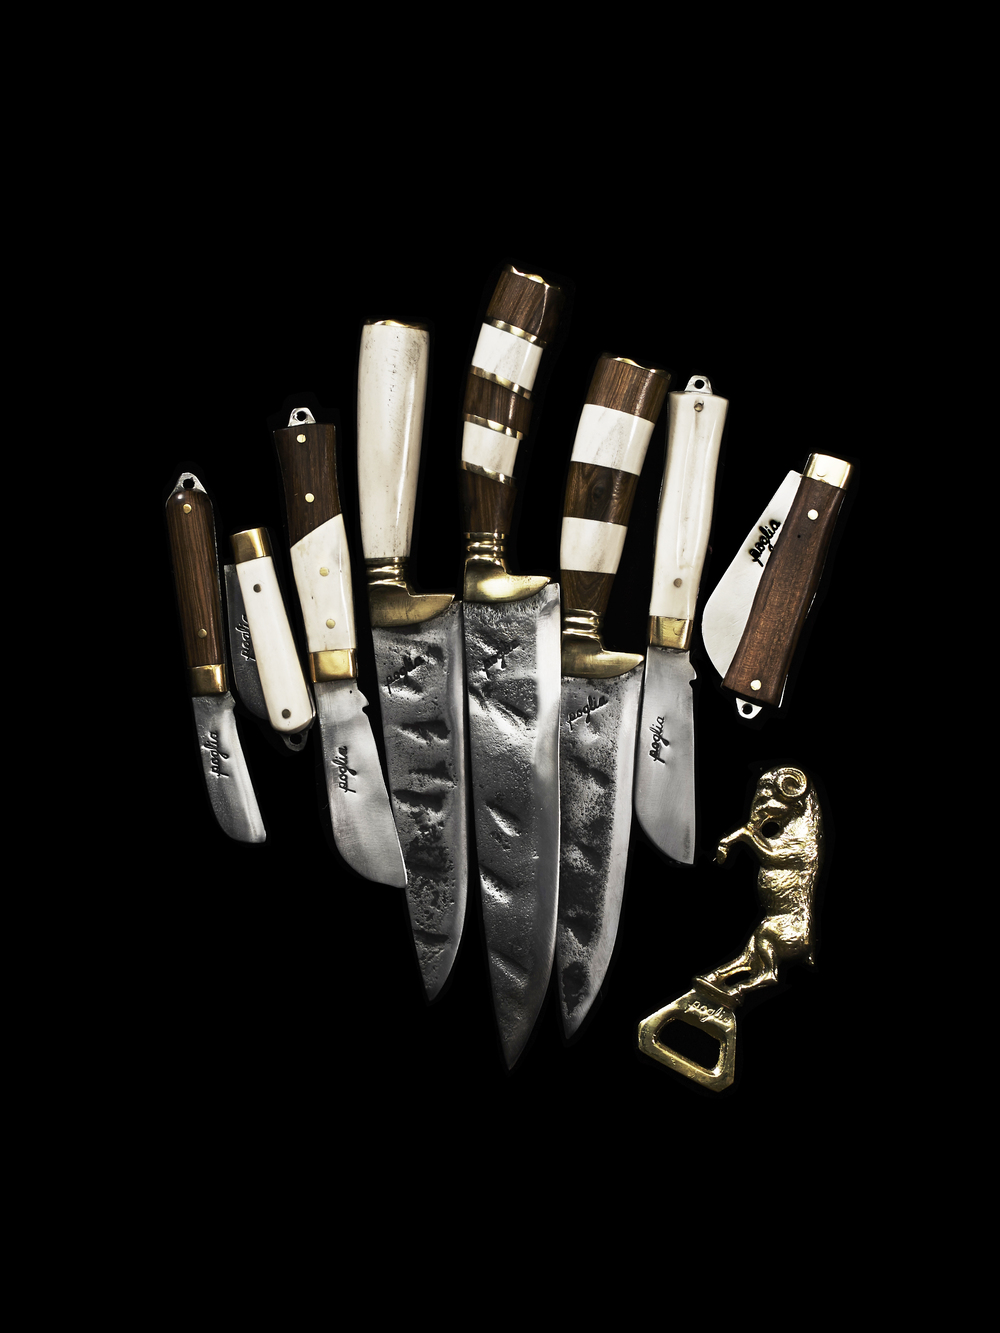 Poglia Handcrafted Knives / Wood Handles